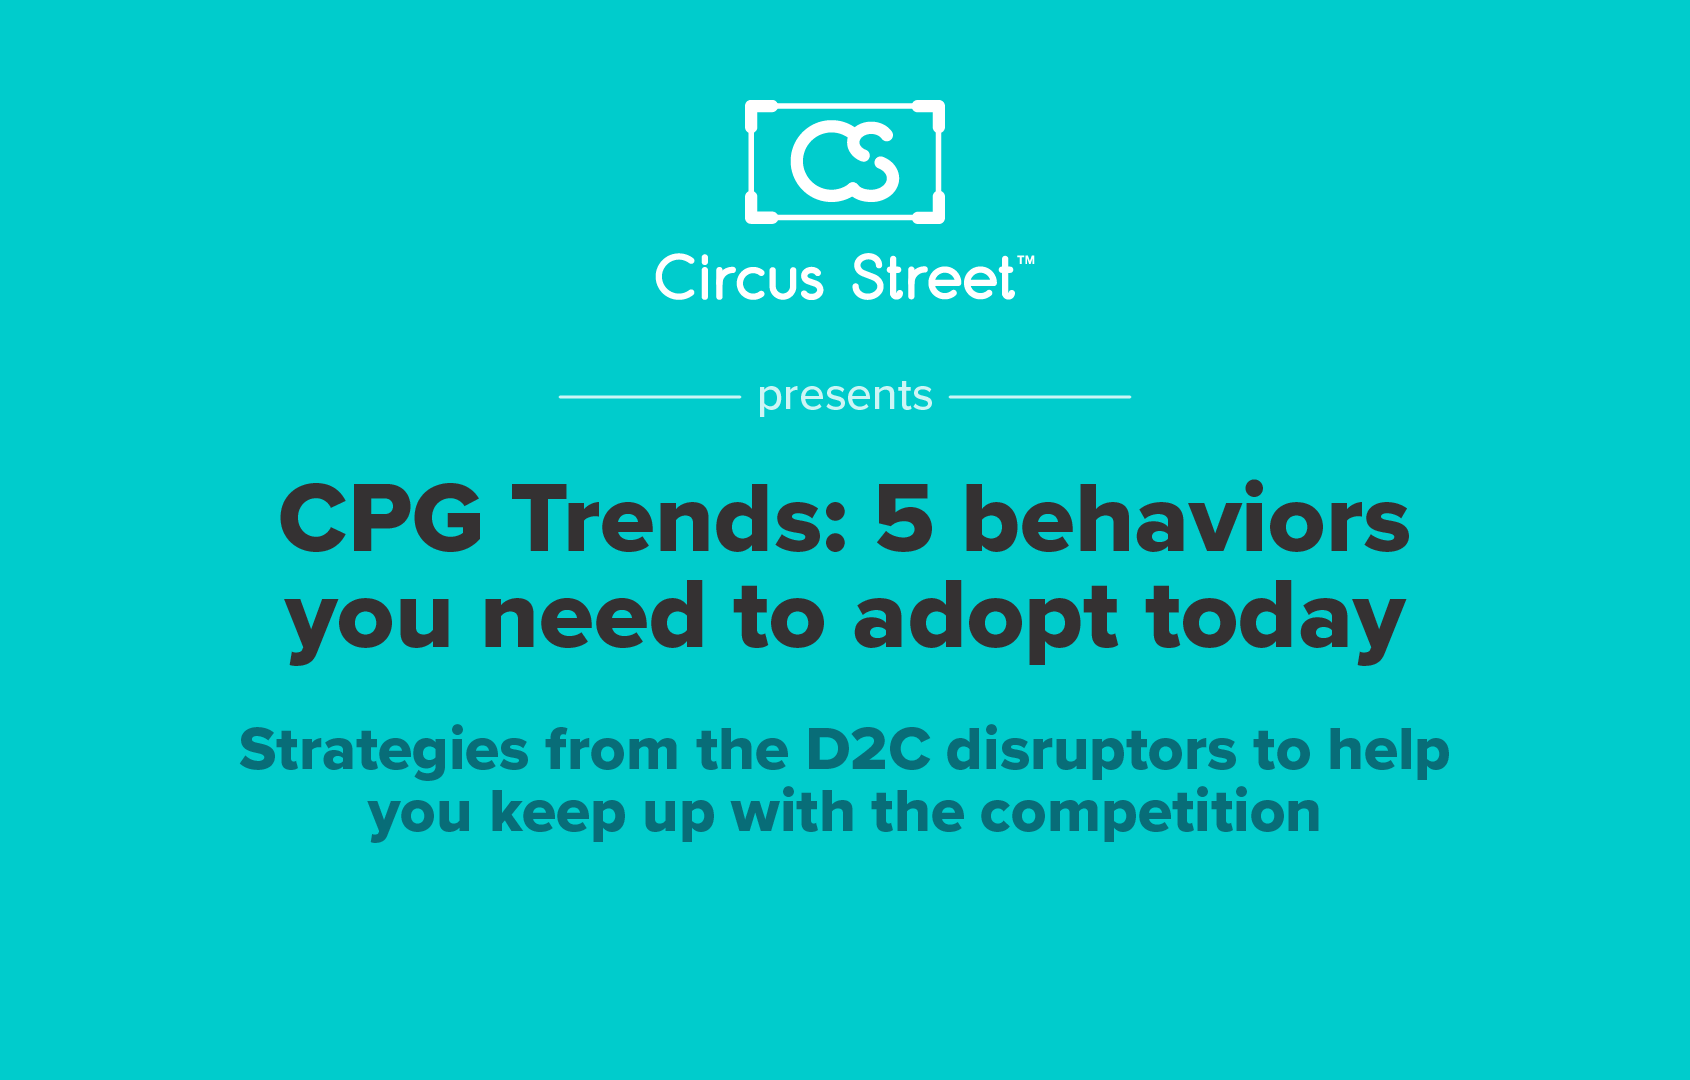 CPG Trends: 5 behaviours you need to adopt today